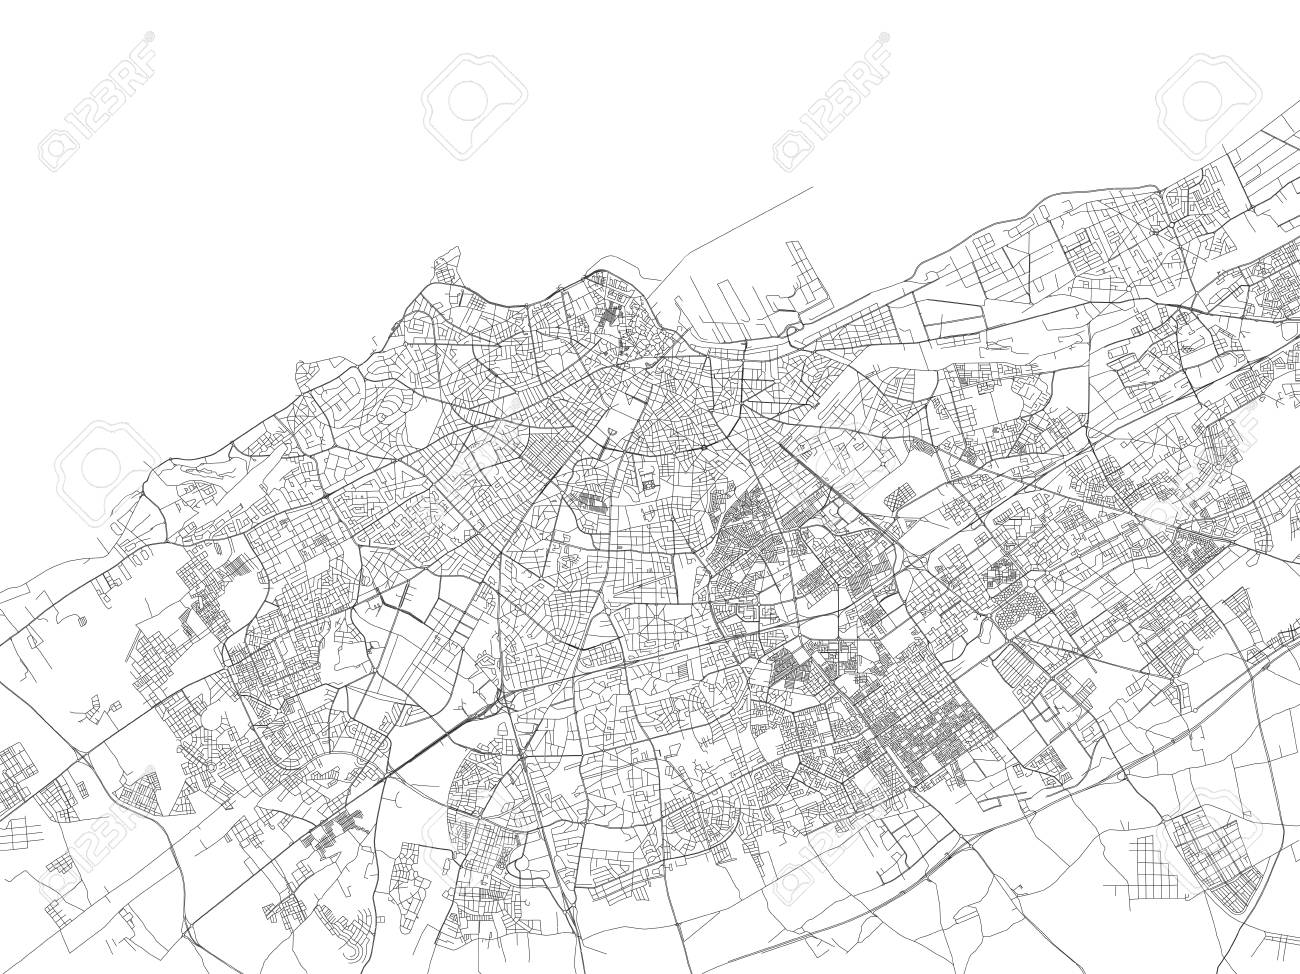 Streets of Casablanca, city map, Morocco, satellite view. Street on berlin germany map, mecca saudi arabia map, berber people, atlas mountains, sopot poland map, tangier location on map, lagos nigeria map, cairo egypt map, dubai map, brussels belgium map, tokyo japan map, ahaggar mountains map, tunis map, beirut lebanon map, khartoum sudan map, hassan ii mosque, riyadh saudi arabia map, algiers algeria map, casablanca tramway pluie, istanbul turkey map, world map, salvador brazil map, tel aviv israel map,